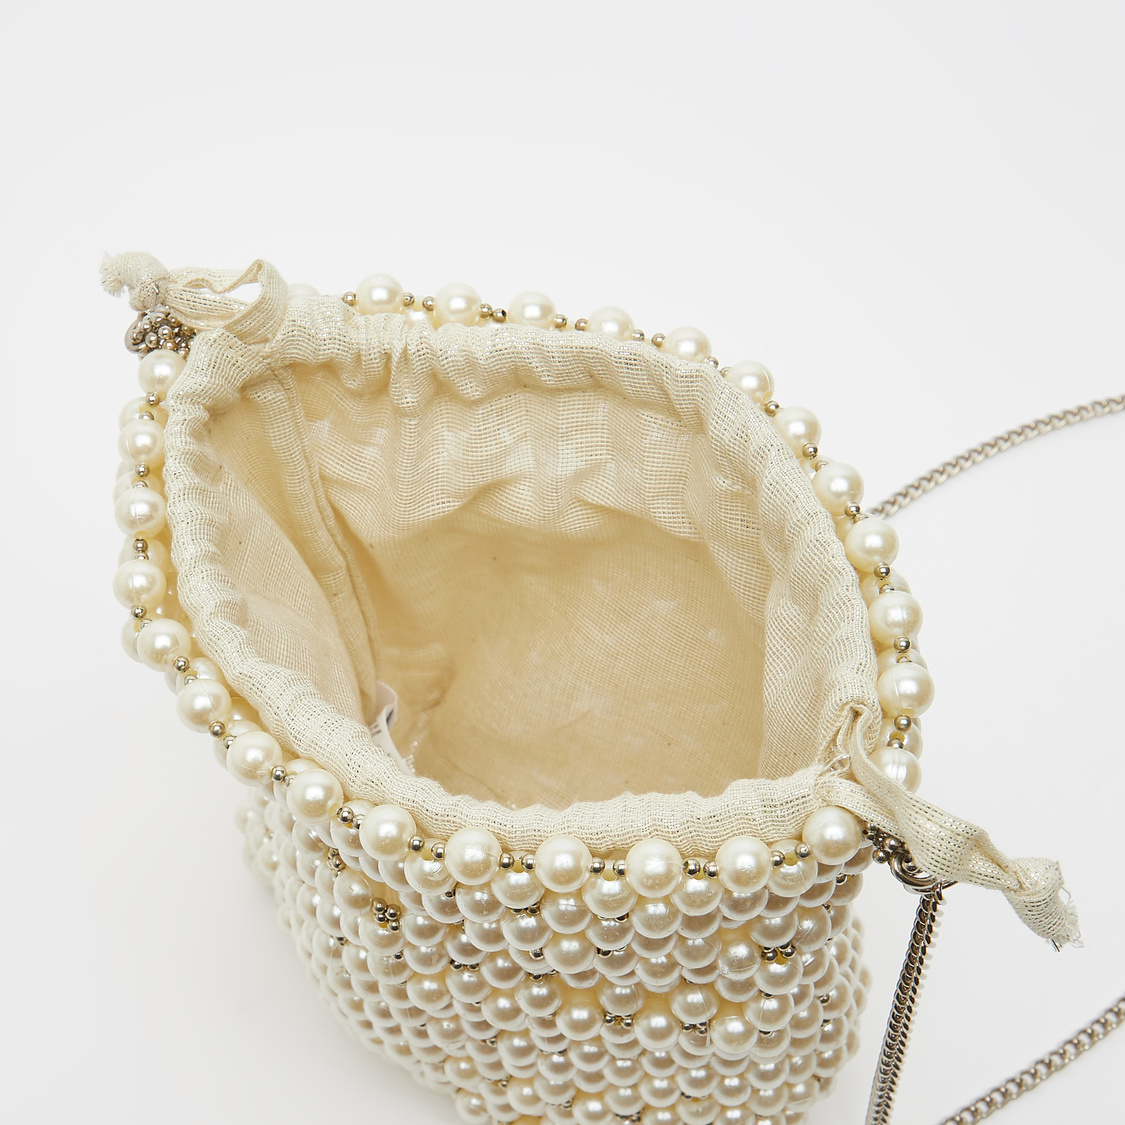 Pearl Detail Crossbody Bag with Metallic Chain